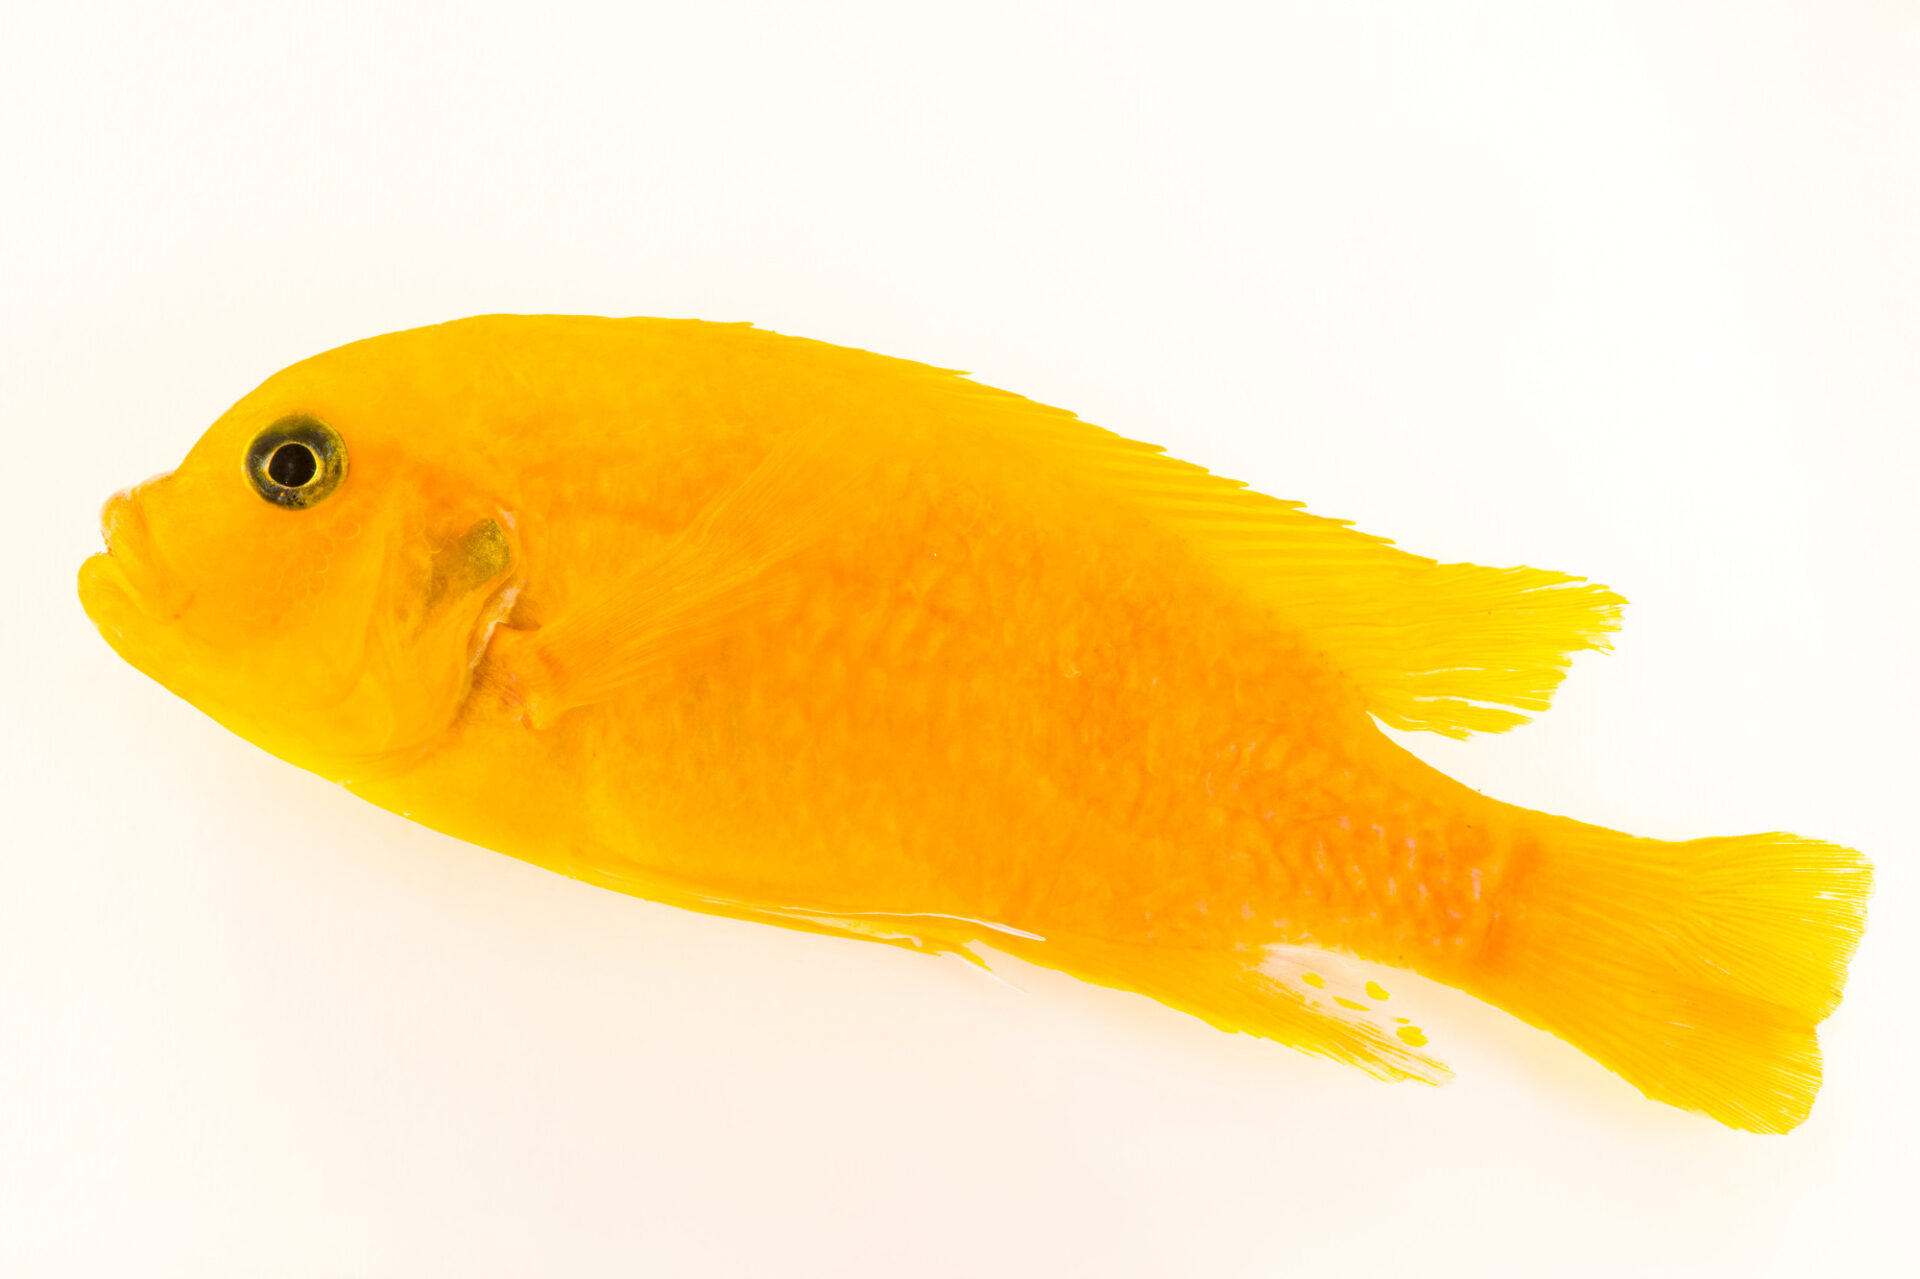 Photo: A critically endangered female cichlid (Pseudotropheus saulosi) from a private collection.